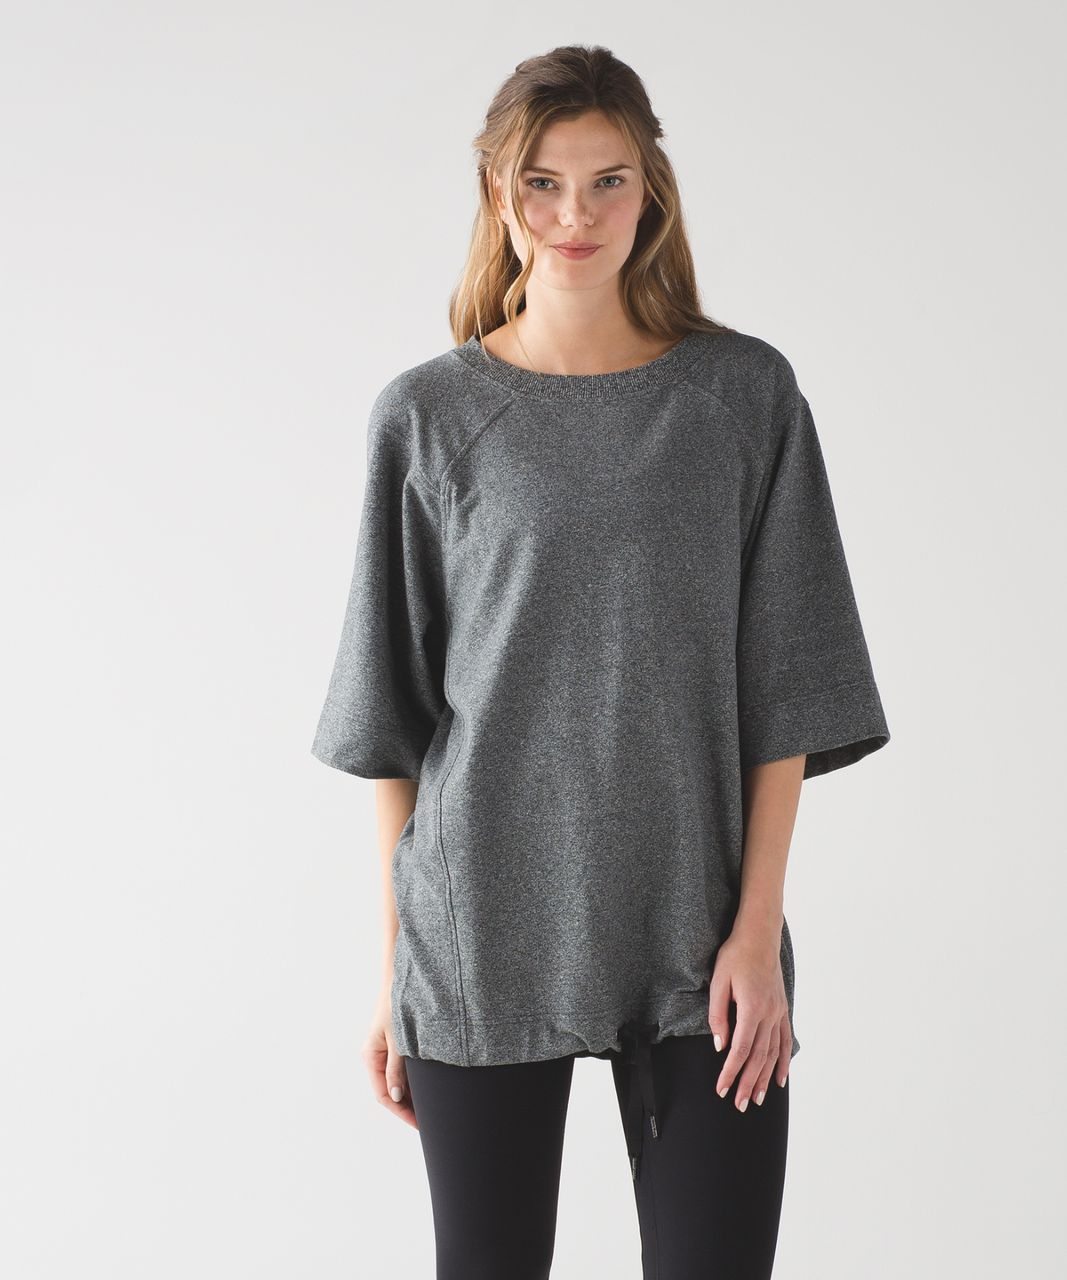 Lululemon Split Short Sleeve - Heathered Speckled Black